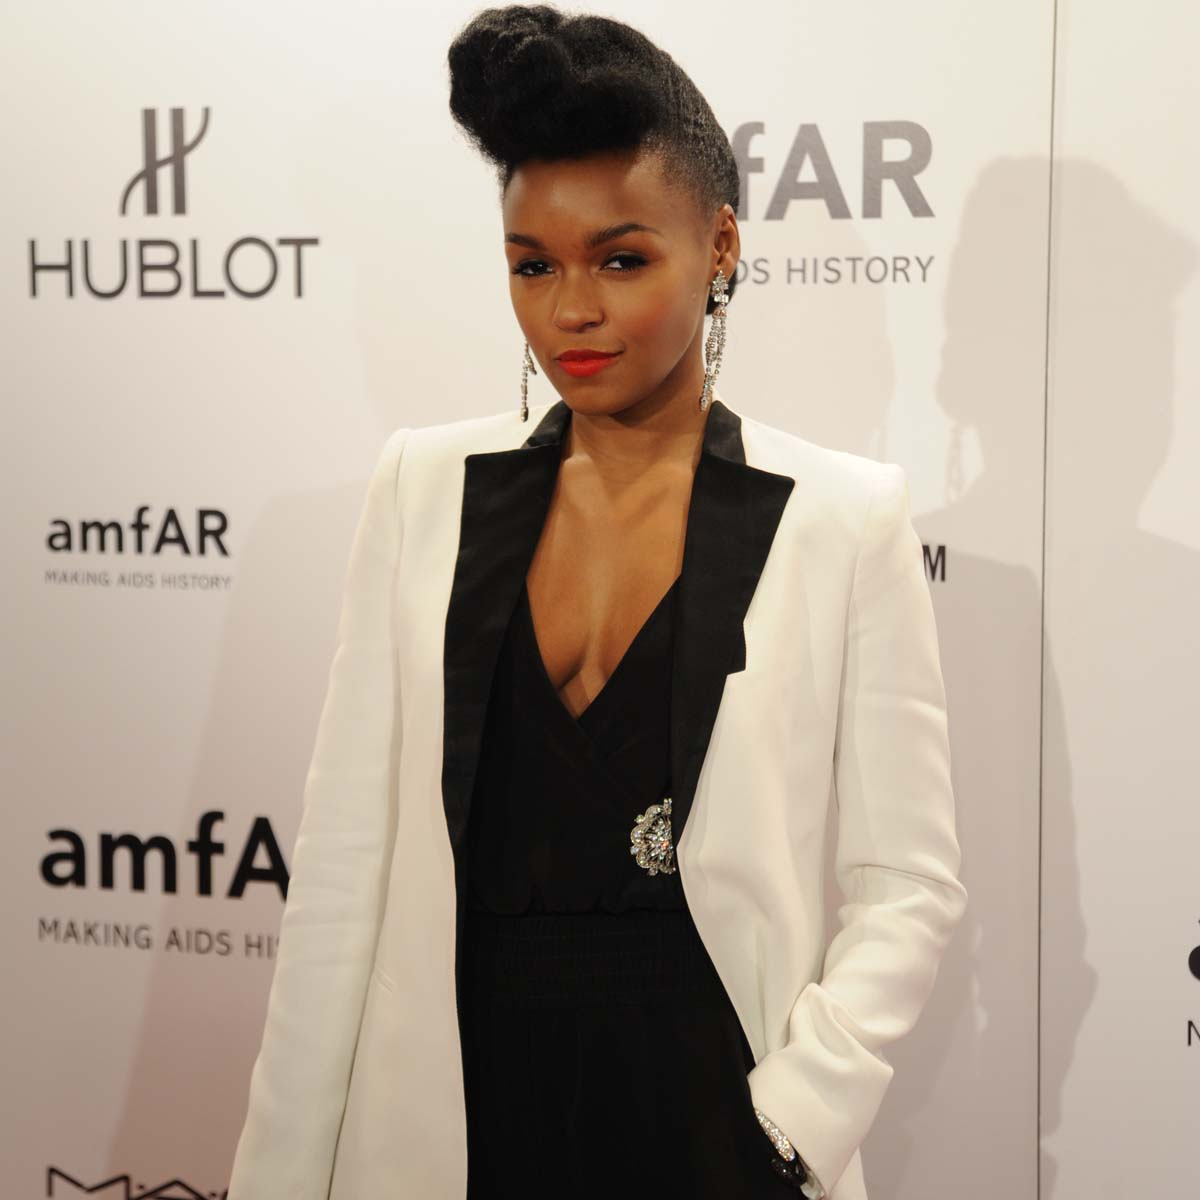 The Watch Quote: Photo - Hublot presents amfAR New York Gala